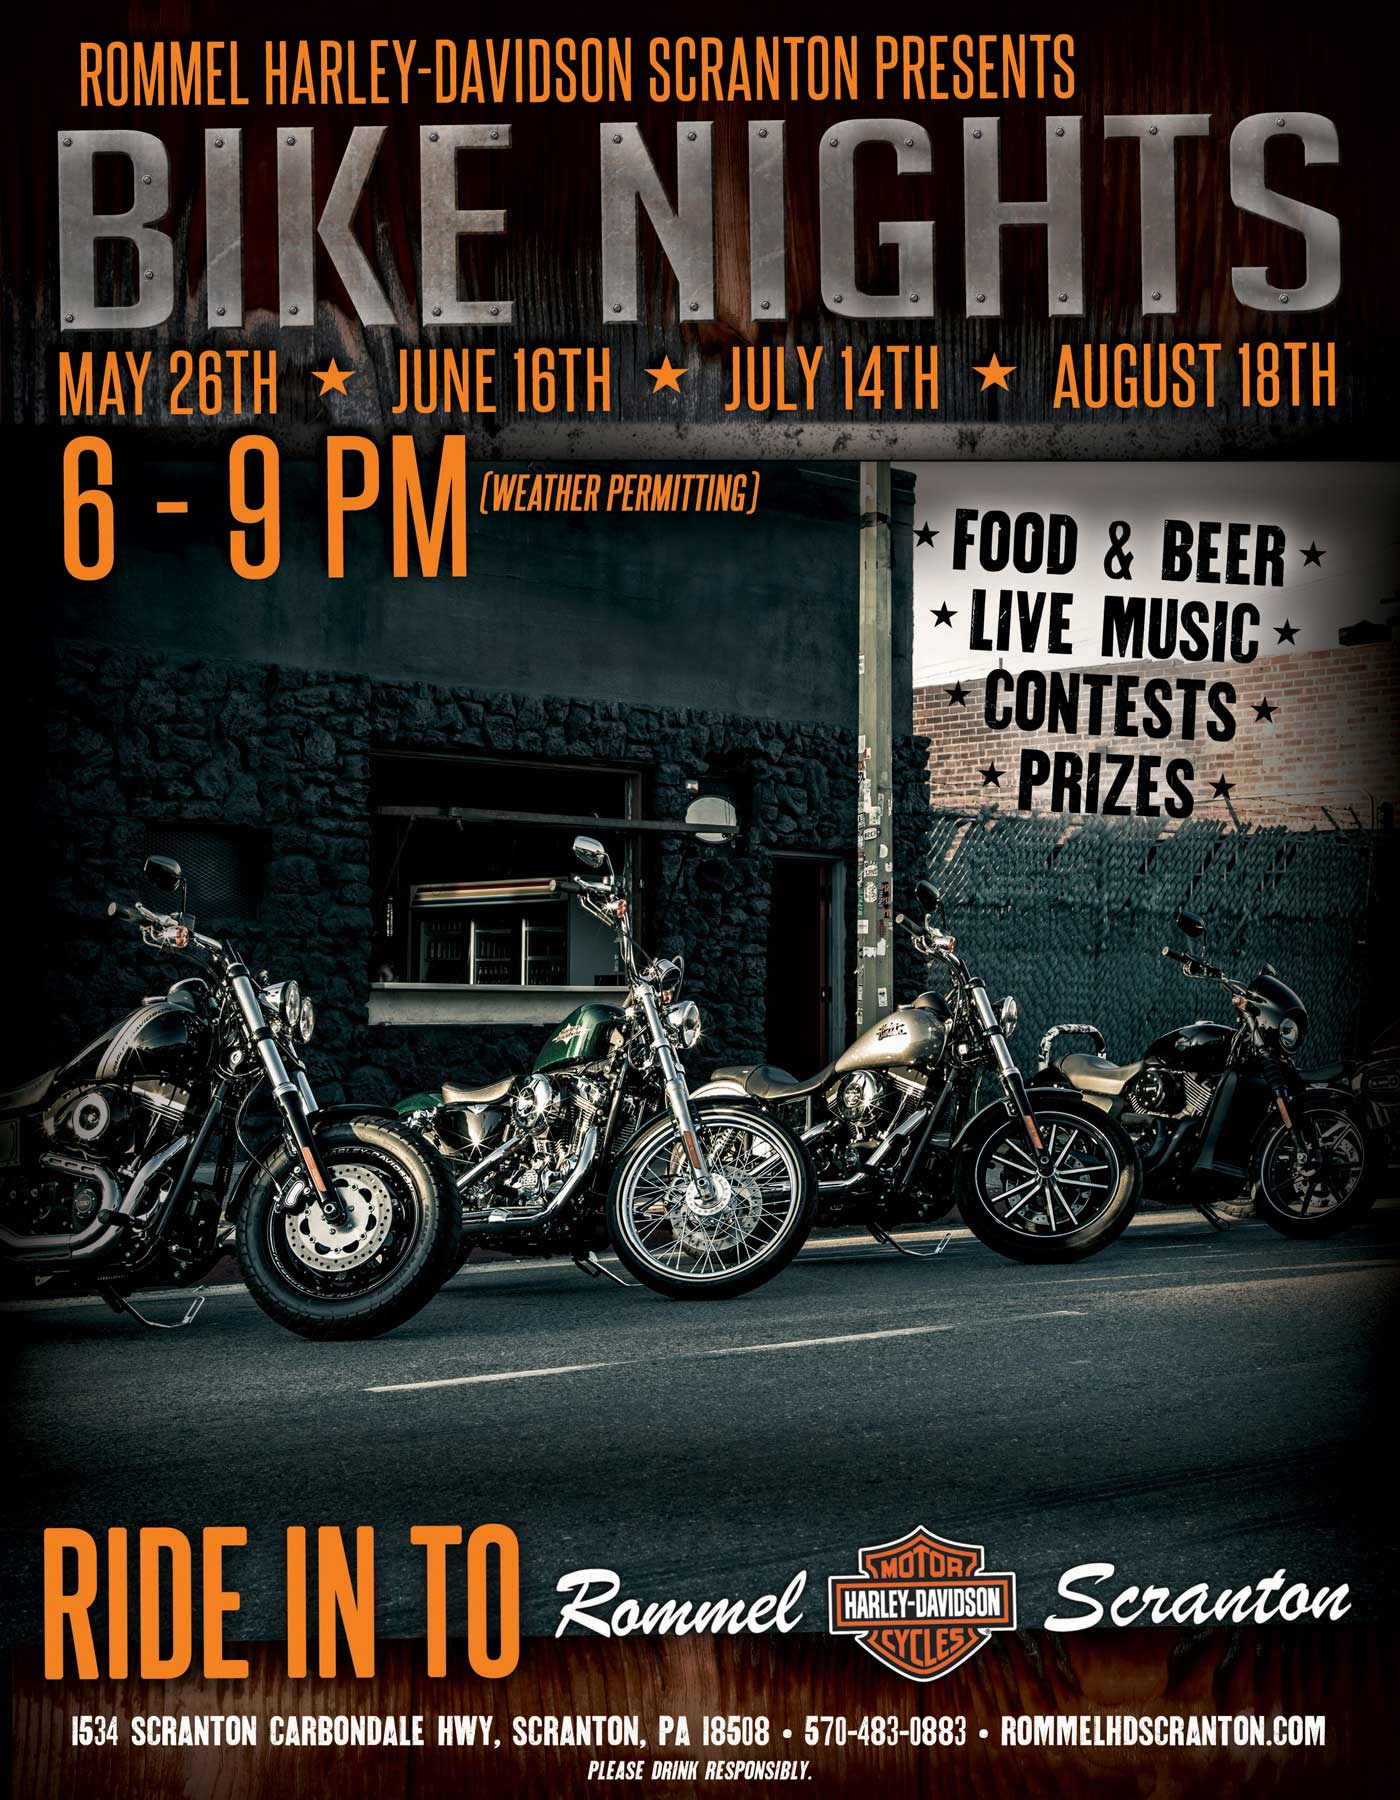 Friday Night Bike Night @ Scranton